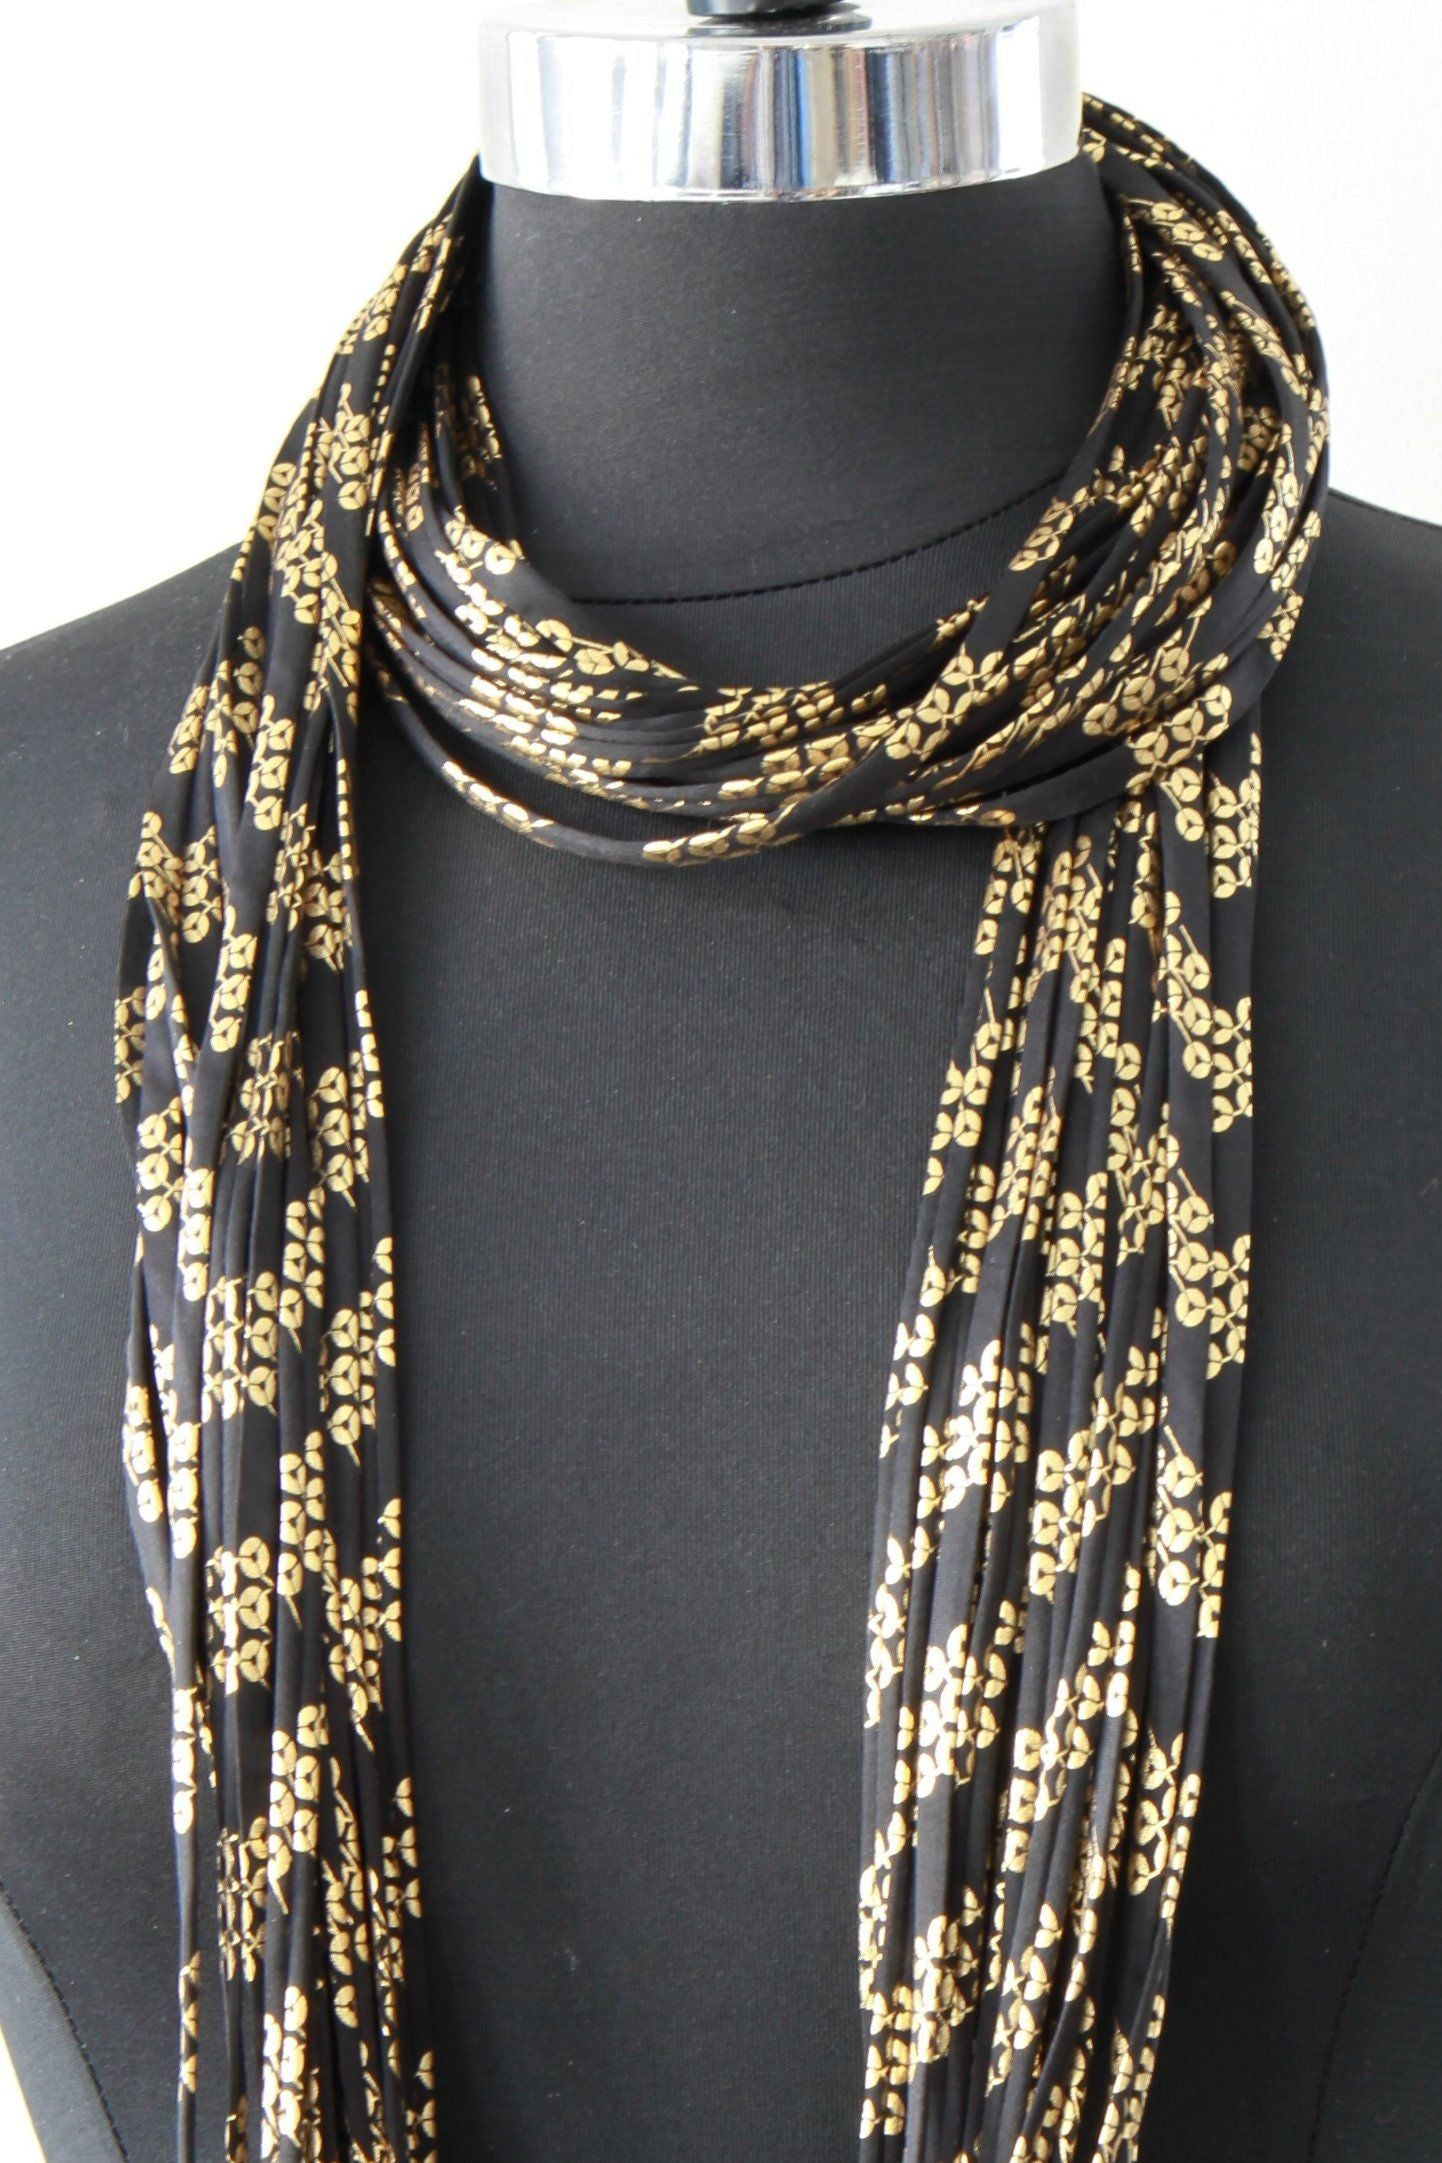 e85c169a5c394 Black and Gold Infinity Scarf 'Glamazon'